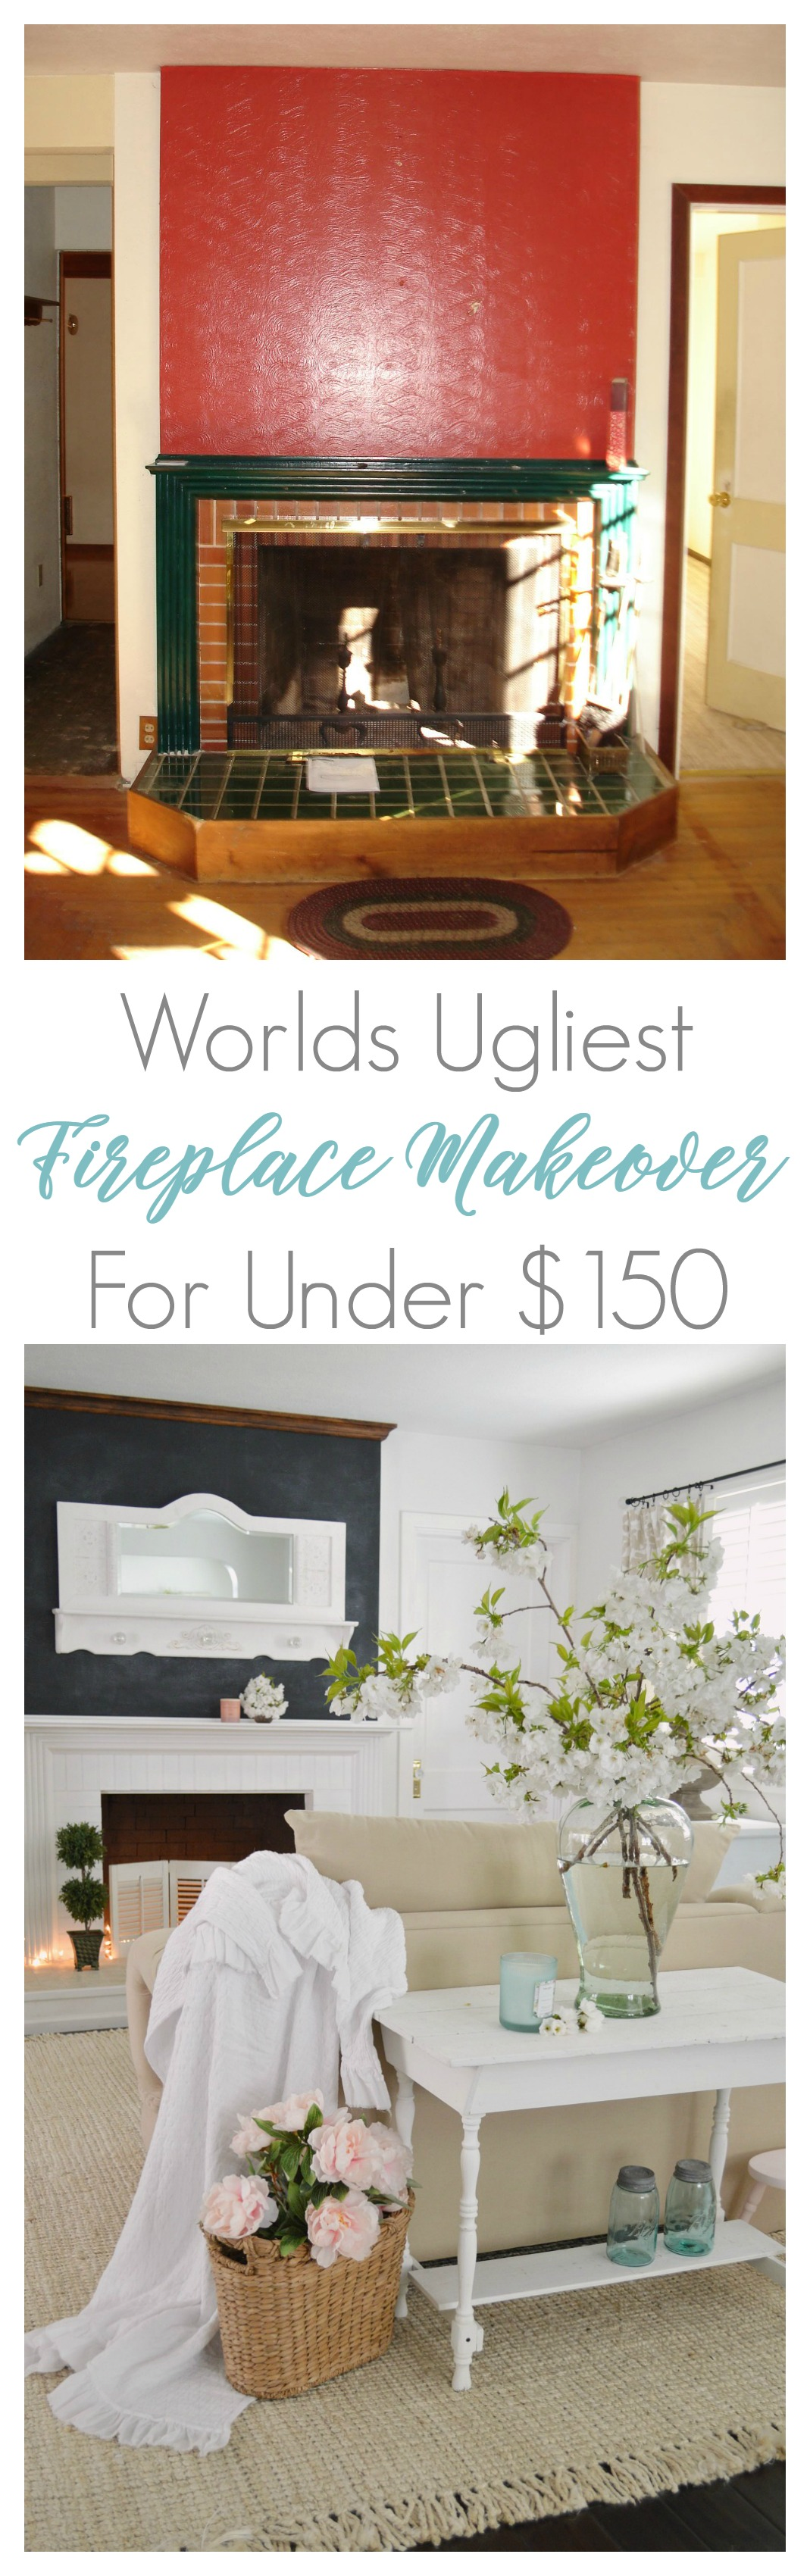 Ugly fireplace makeover for under $150 - Simple cottage farmhouse style on a budget